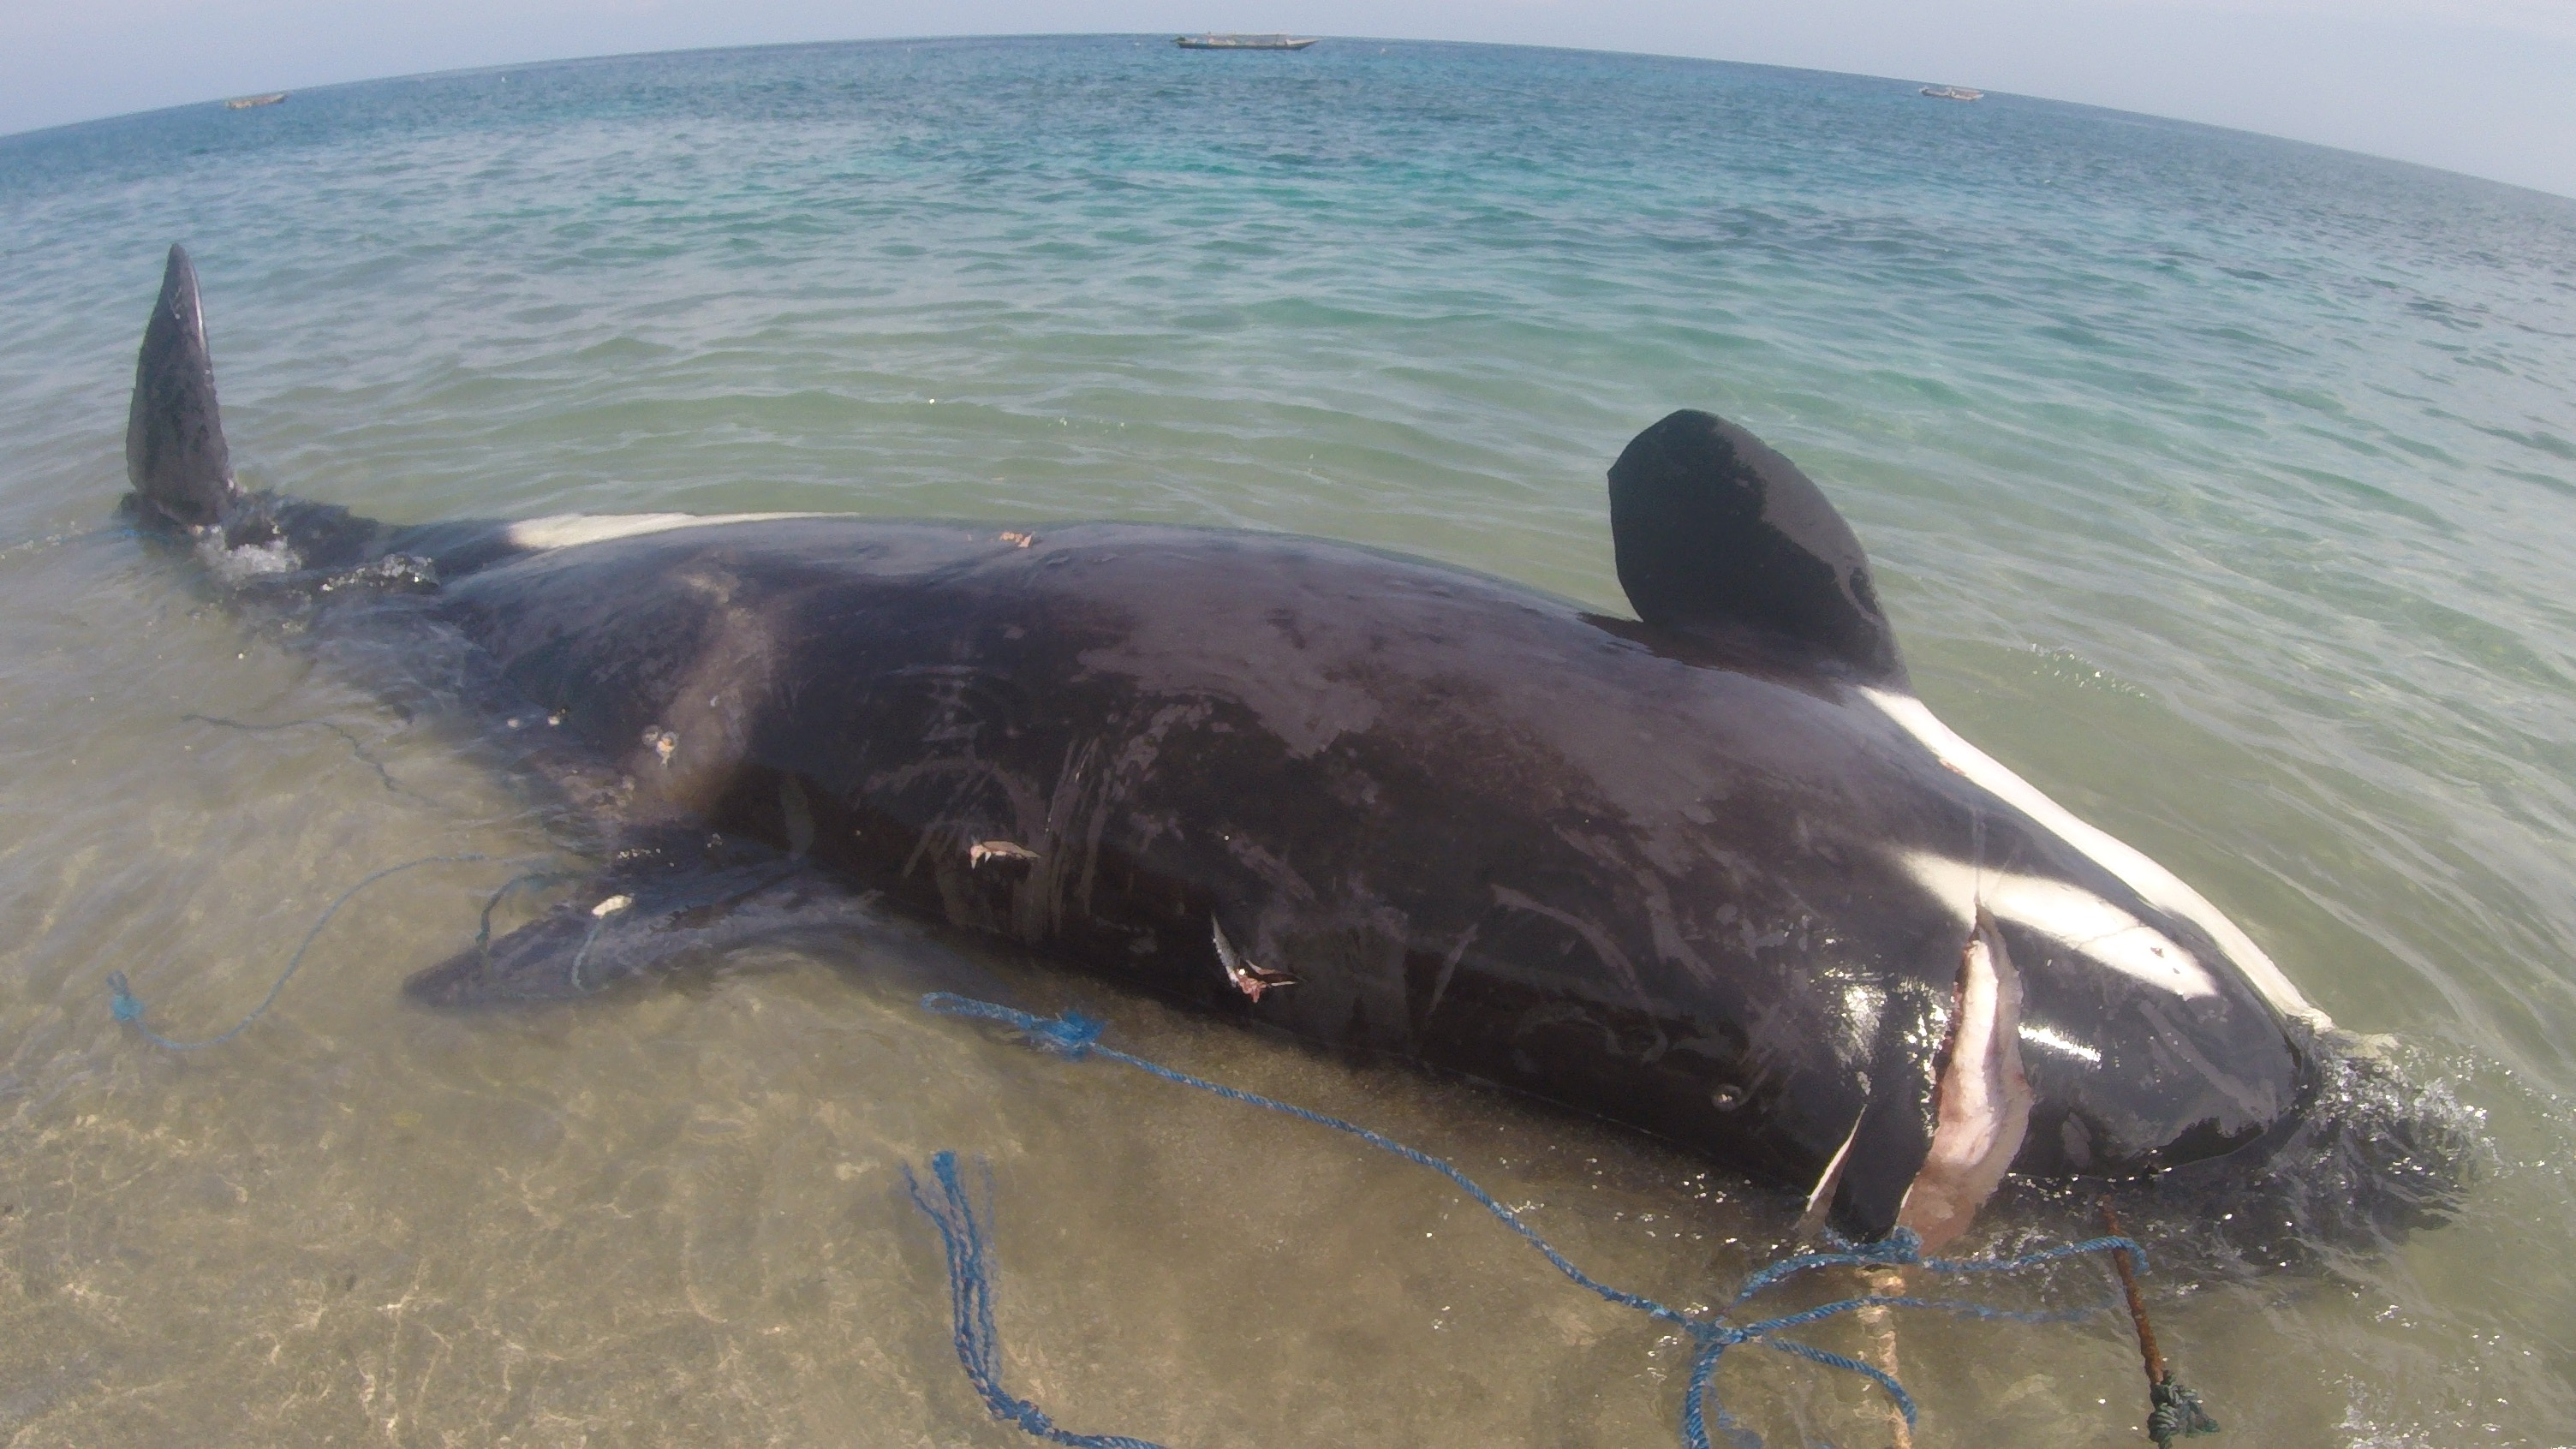 Family of orcas killed illegally in Lamalera, Indonesia.